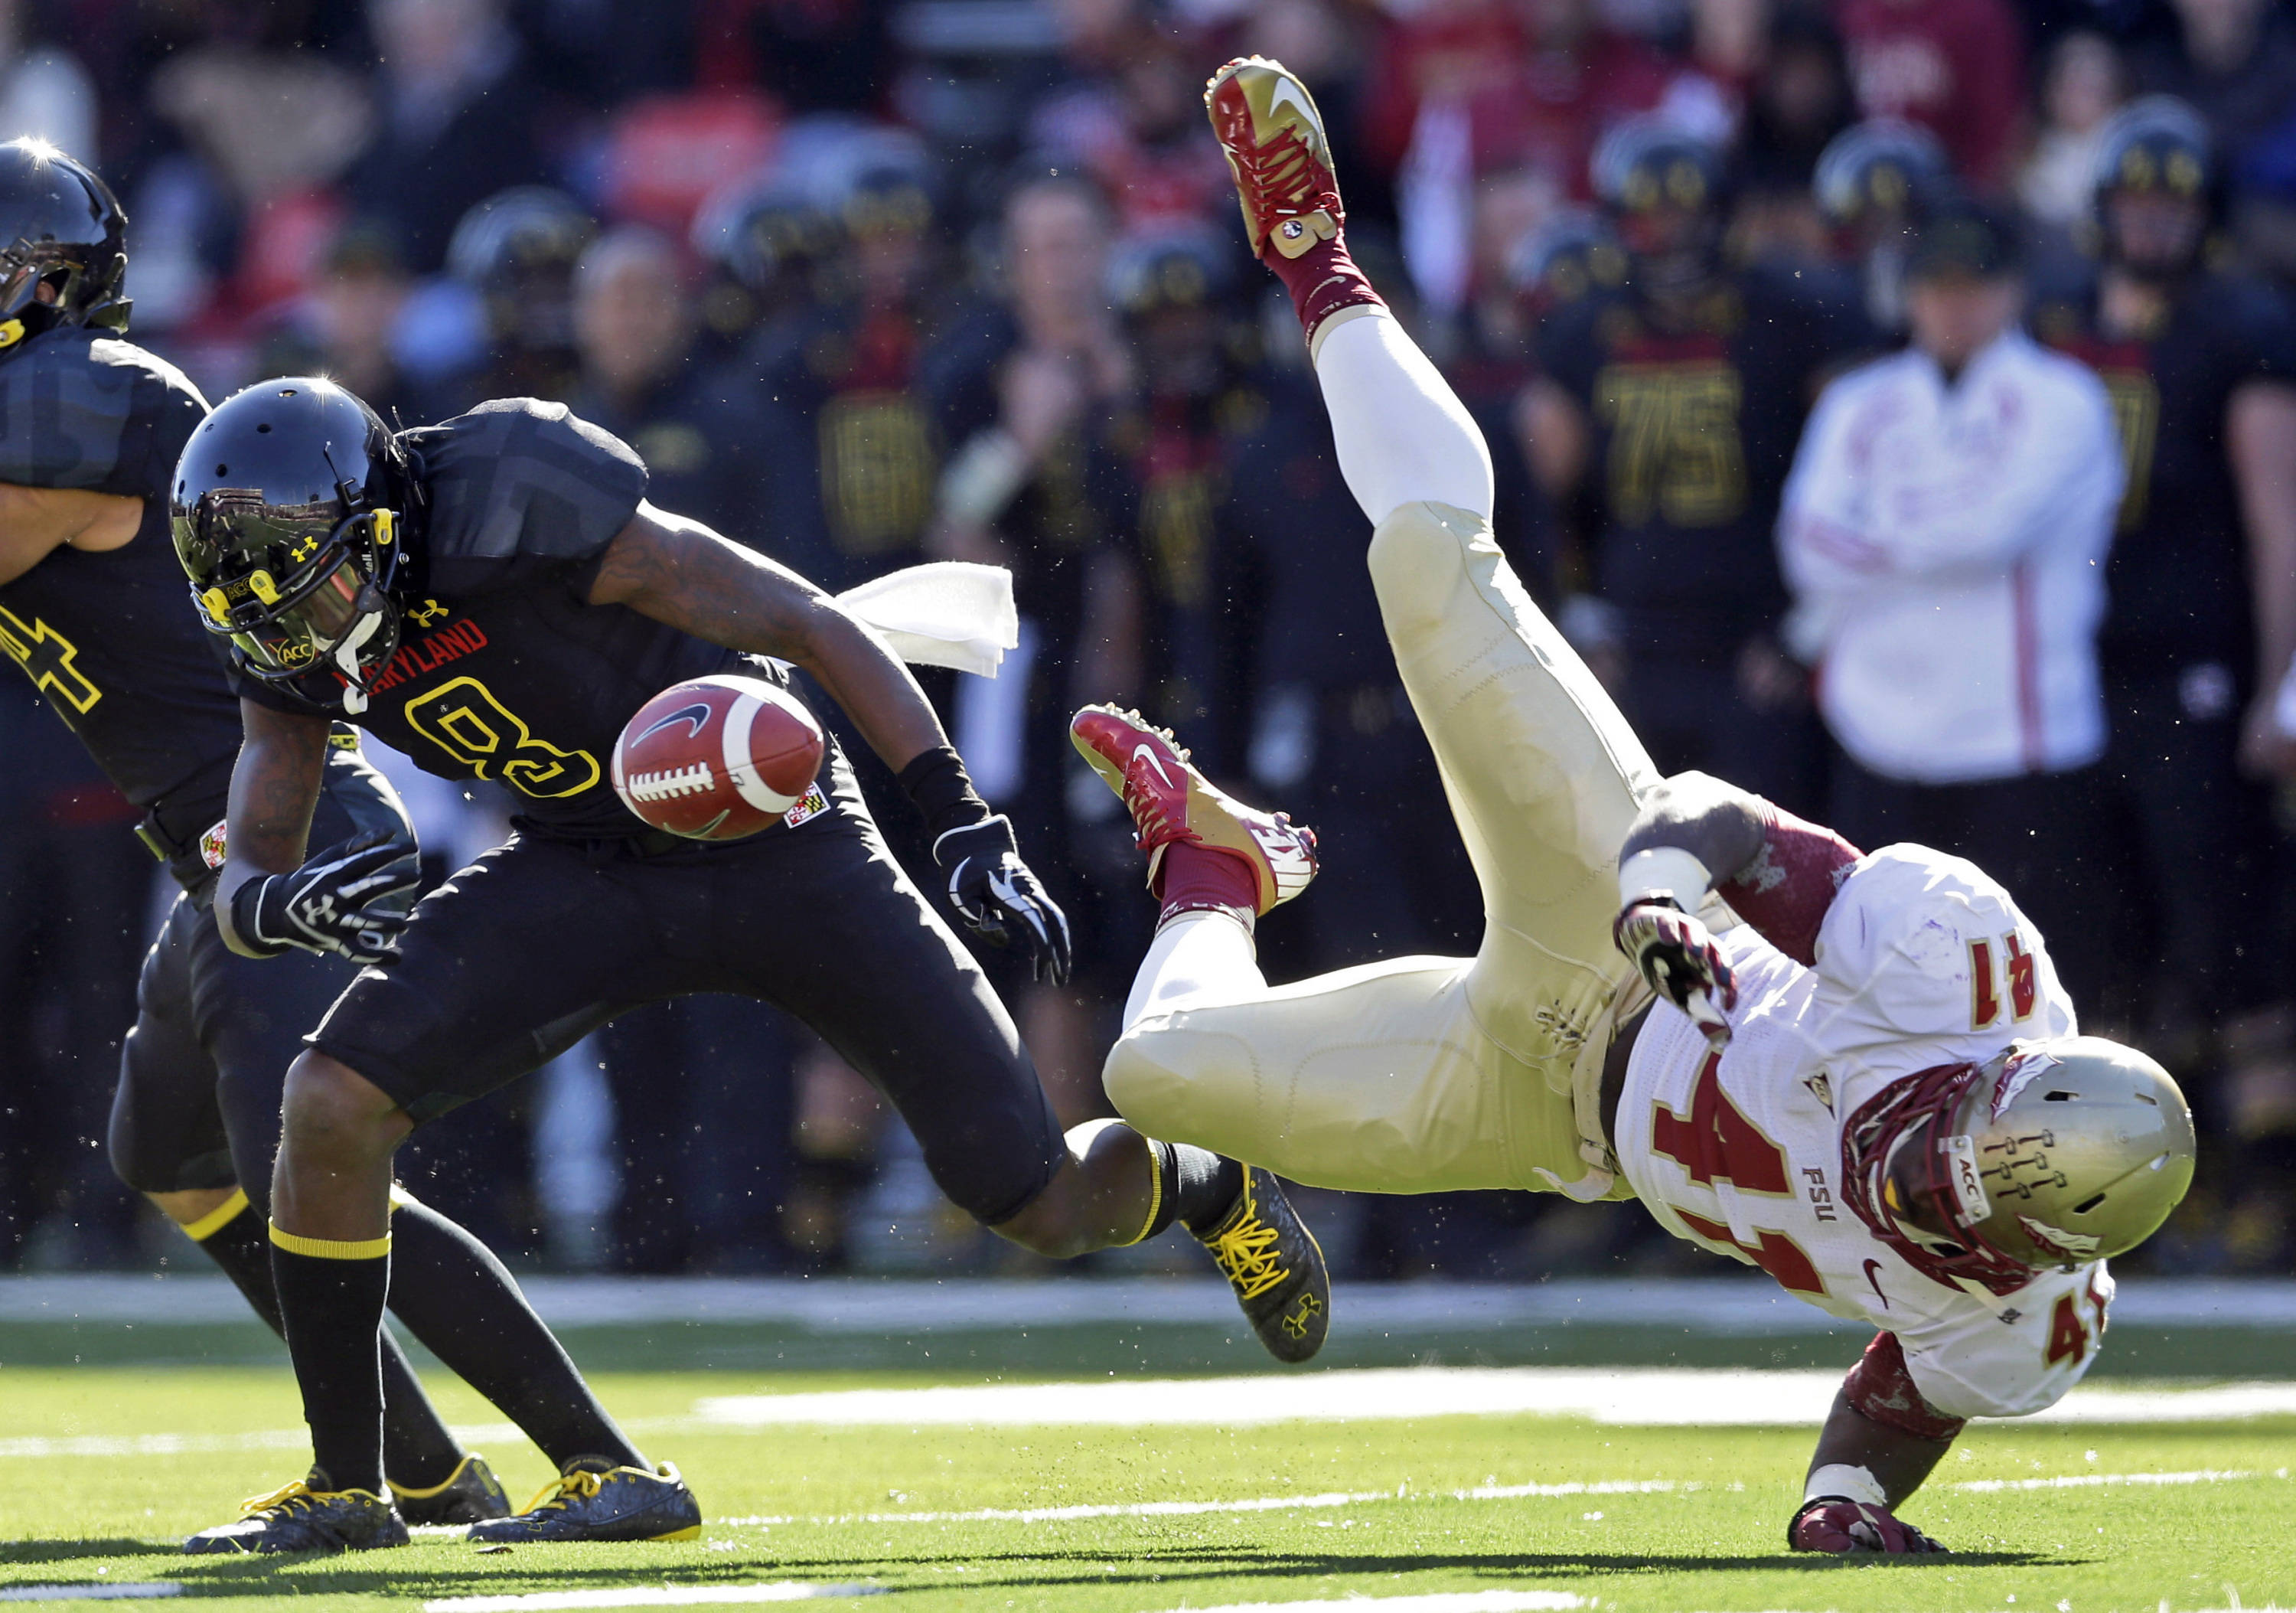 Maryland's Levern Jacobs, left, fumbles the ball after being hit by fullback Chad Abram on a kickoff return during the first half of an NCAA college football game in College Park, Md., Saturday, Nov. 17, 2012. Florida State recovered the ball on the play. (AP Photo/Patrick Semansky)